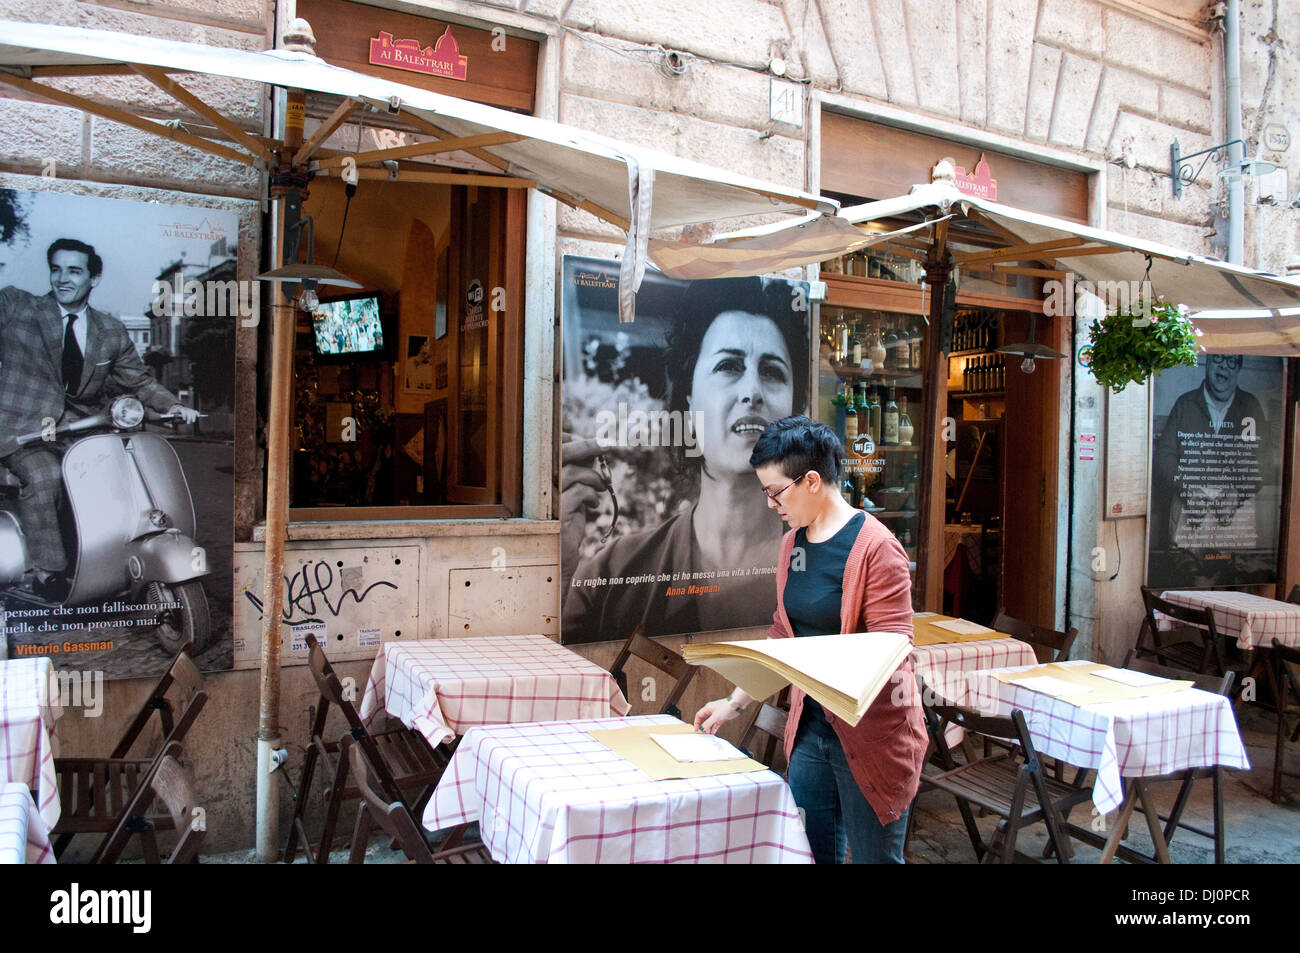 Waitress laying tables Restaurant  Campo de' Fiori district, with Anna Magnani and Gregory Peck photographs, Rome, Italy - Stock Image